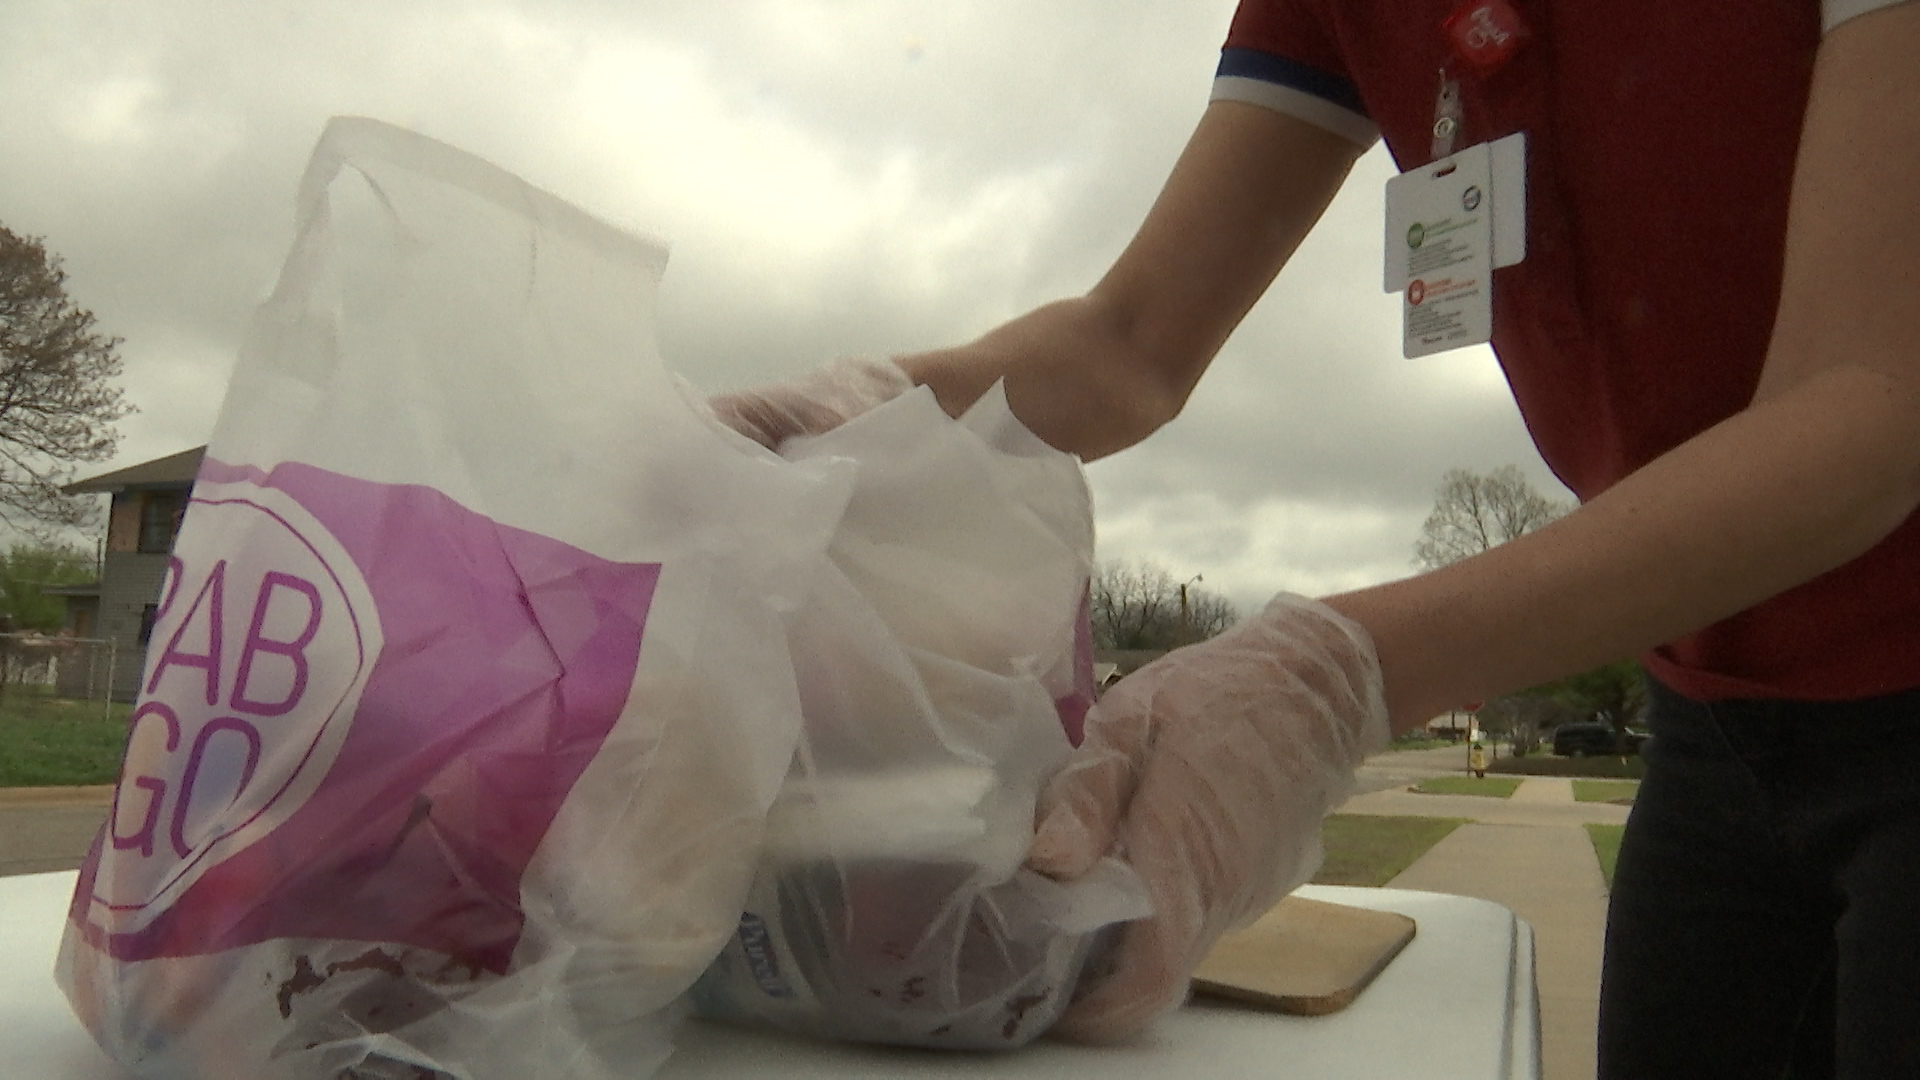 Wichita Falls Independent School District students will still be well-fed in the coming weeks thanks to the meal distribution program that started Monday.